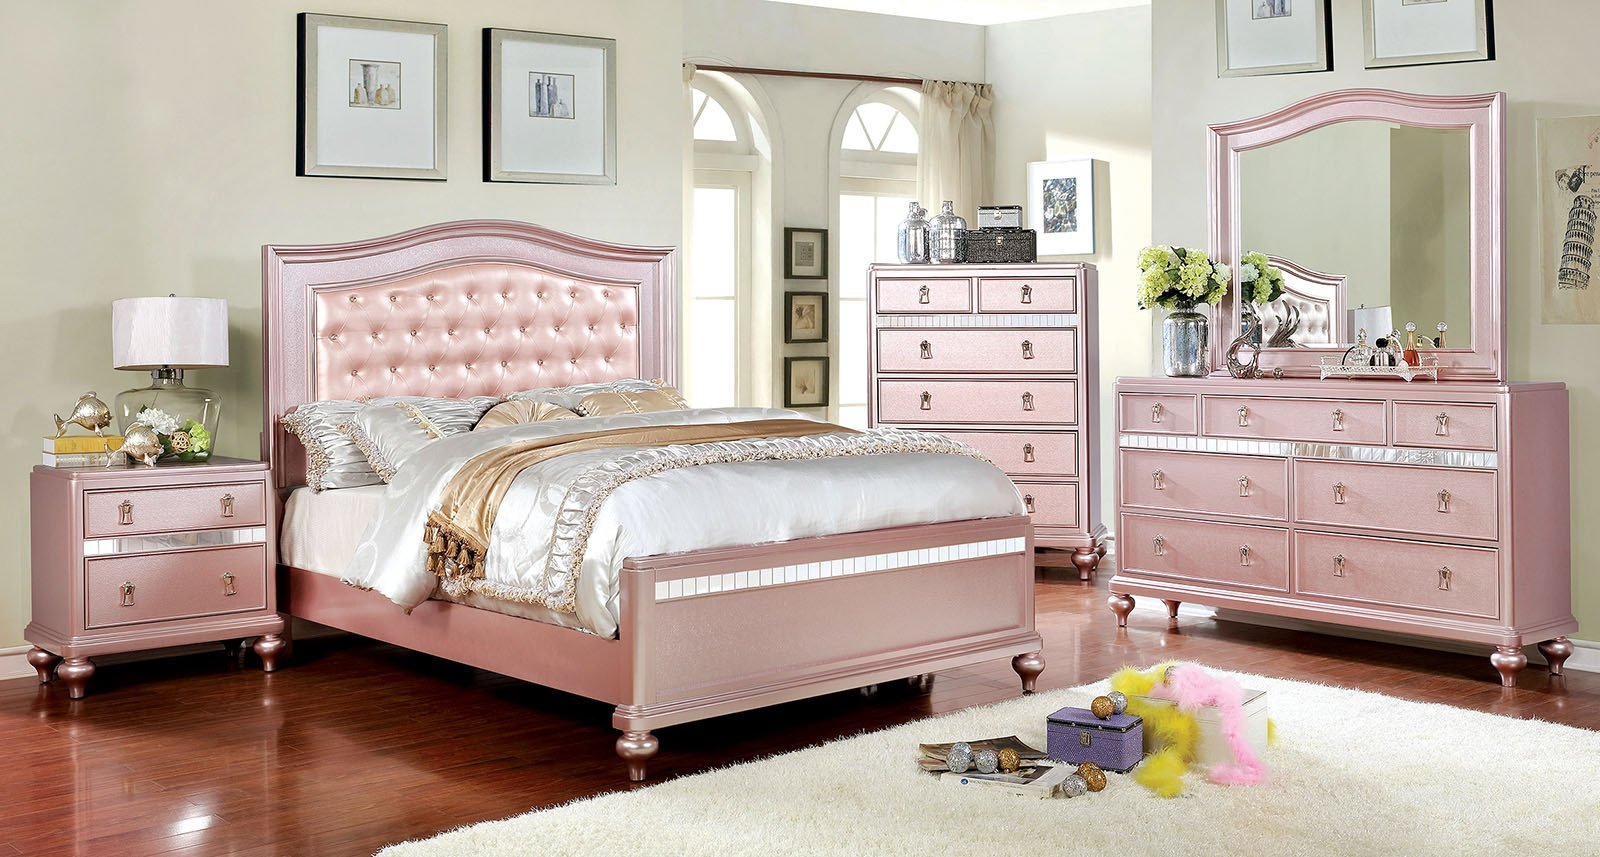 Leather Headboard Bedroom Set Best Of Ariston Rose Gold Finish Queen Size Bed with Mirrored Trim Jeweled button Tufted Padded Leather Headboard